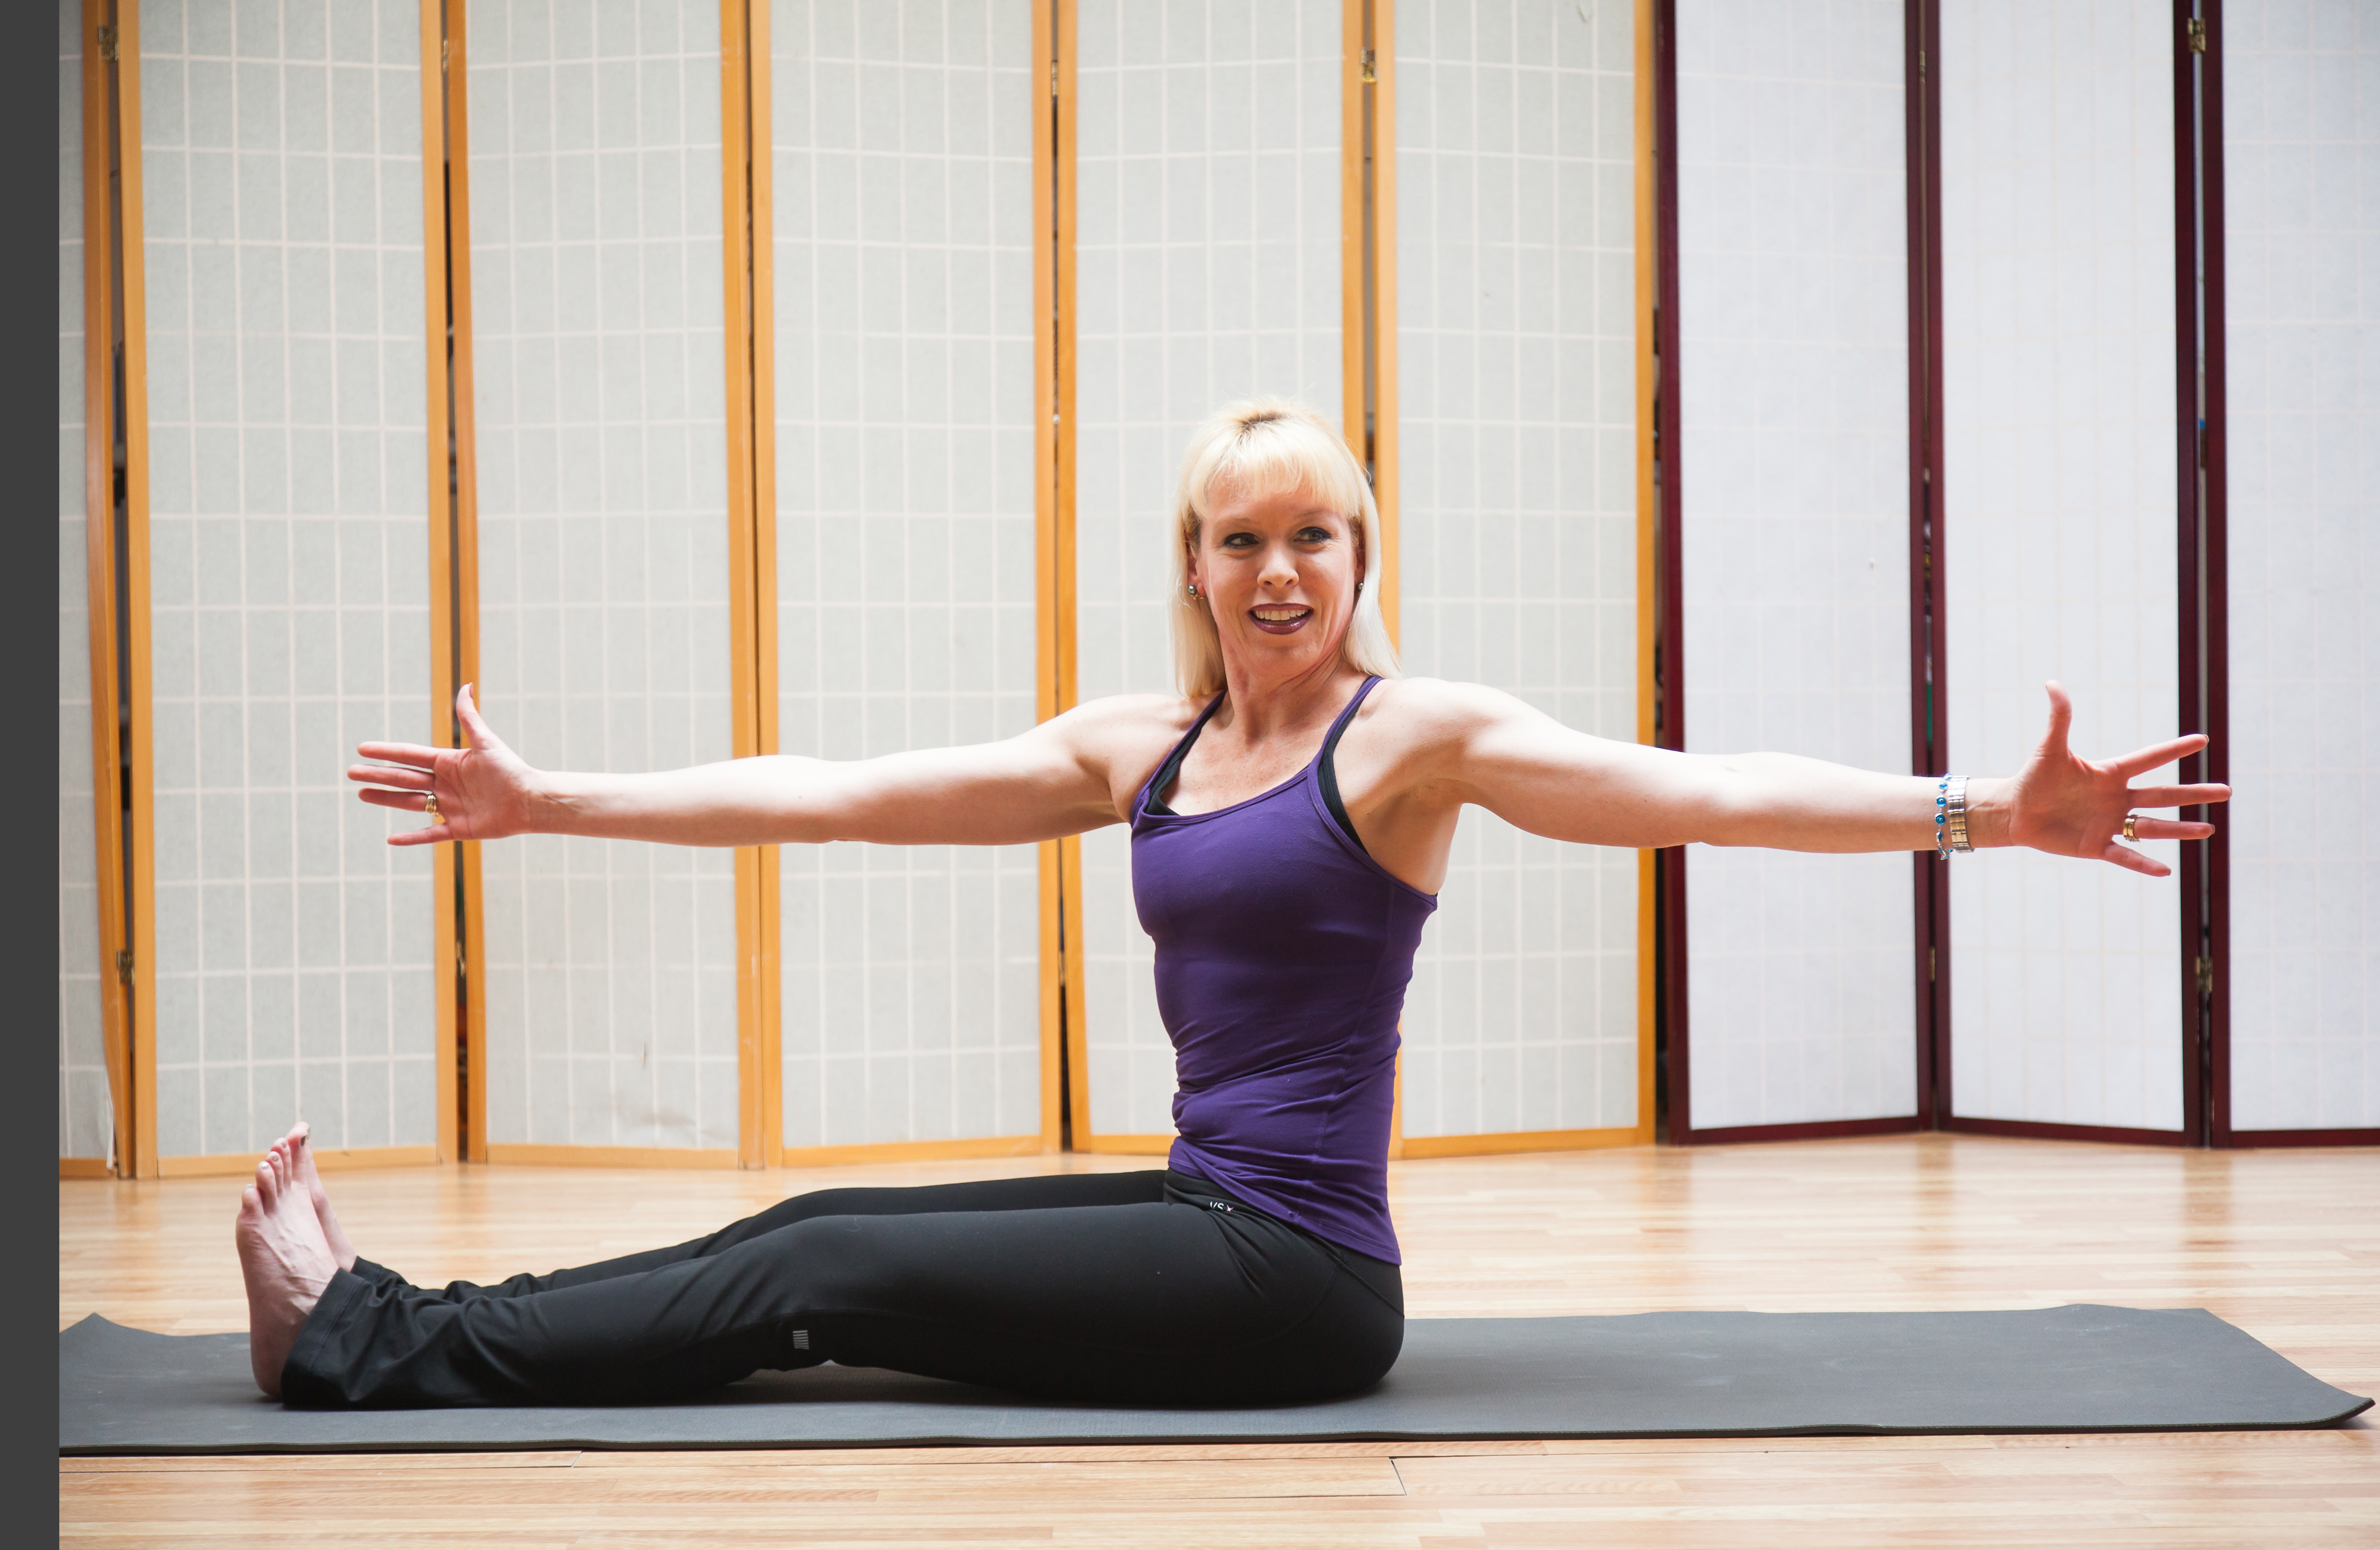 Spinal Twist | Holiday Detox: A 10-Minute Yoga and Pilates